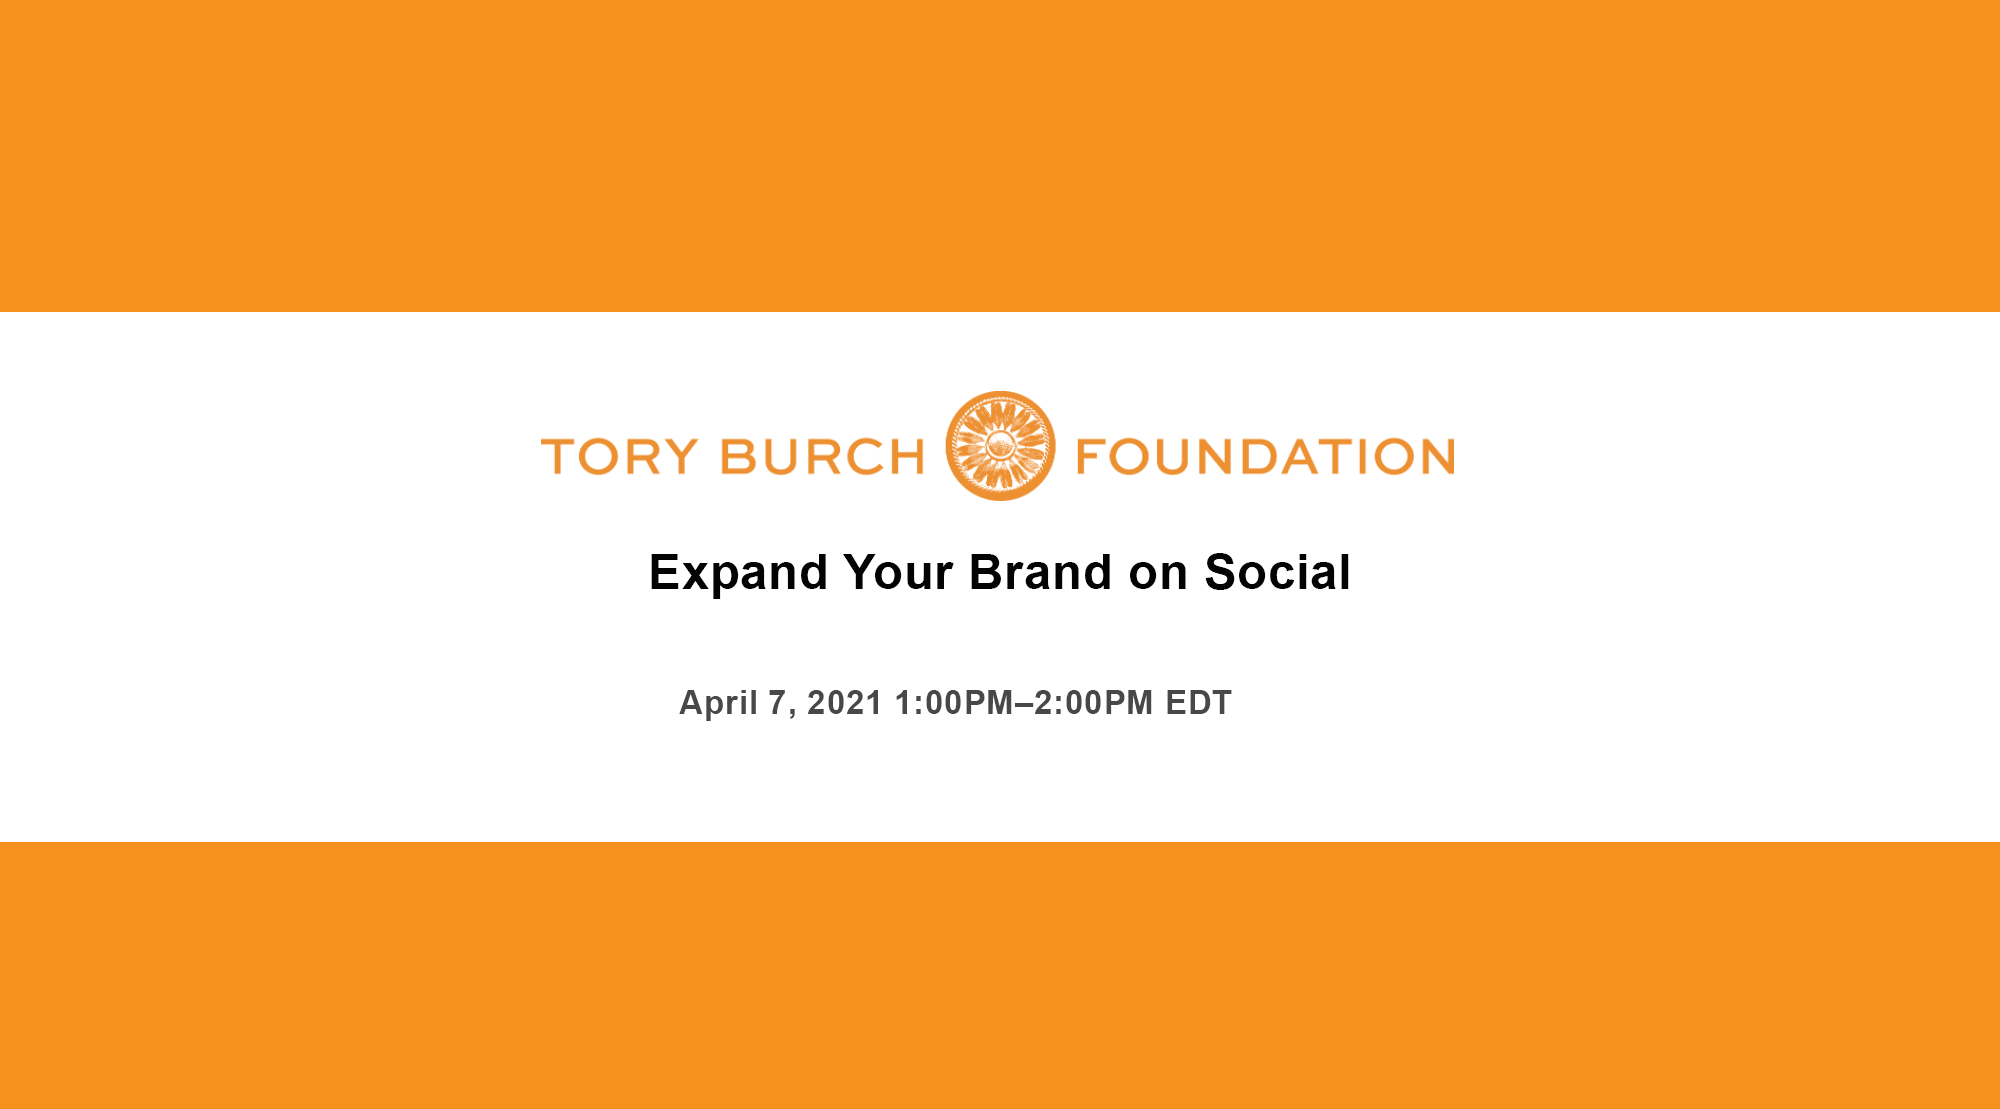 Expand Your Brand on Social